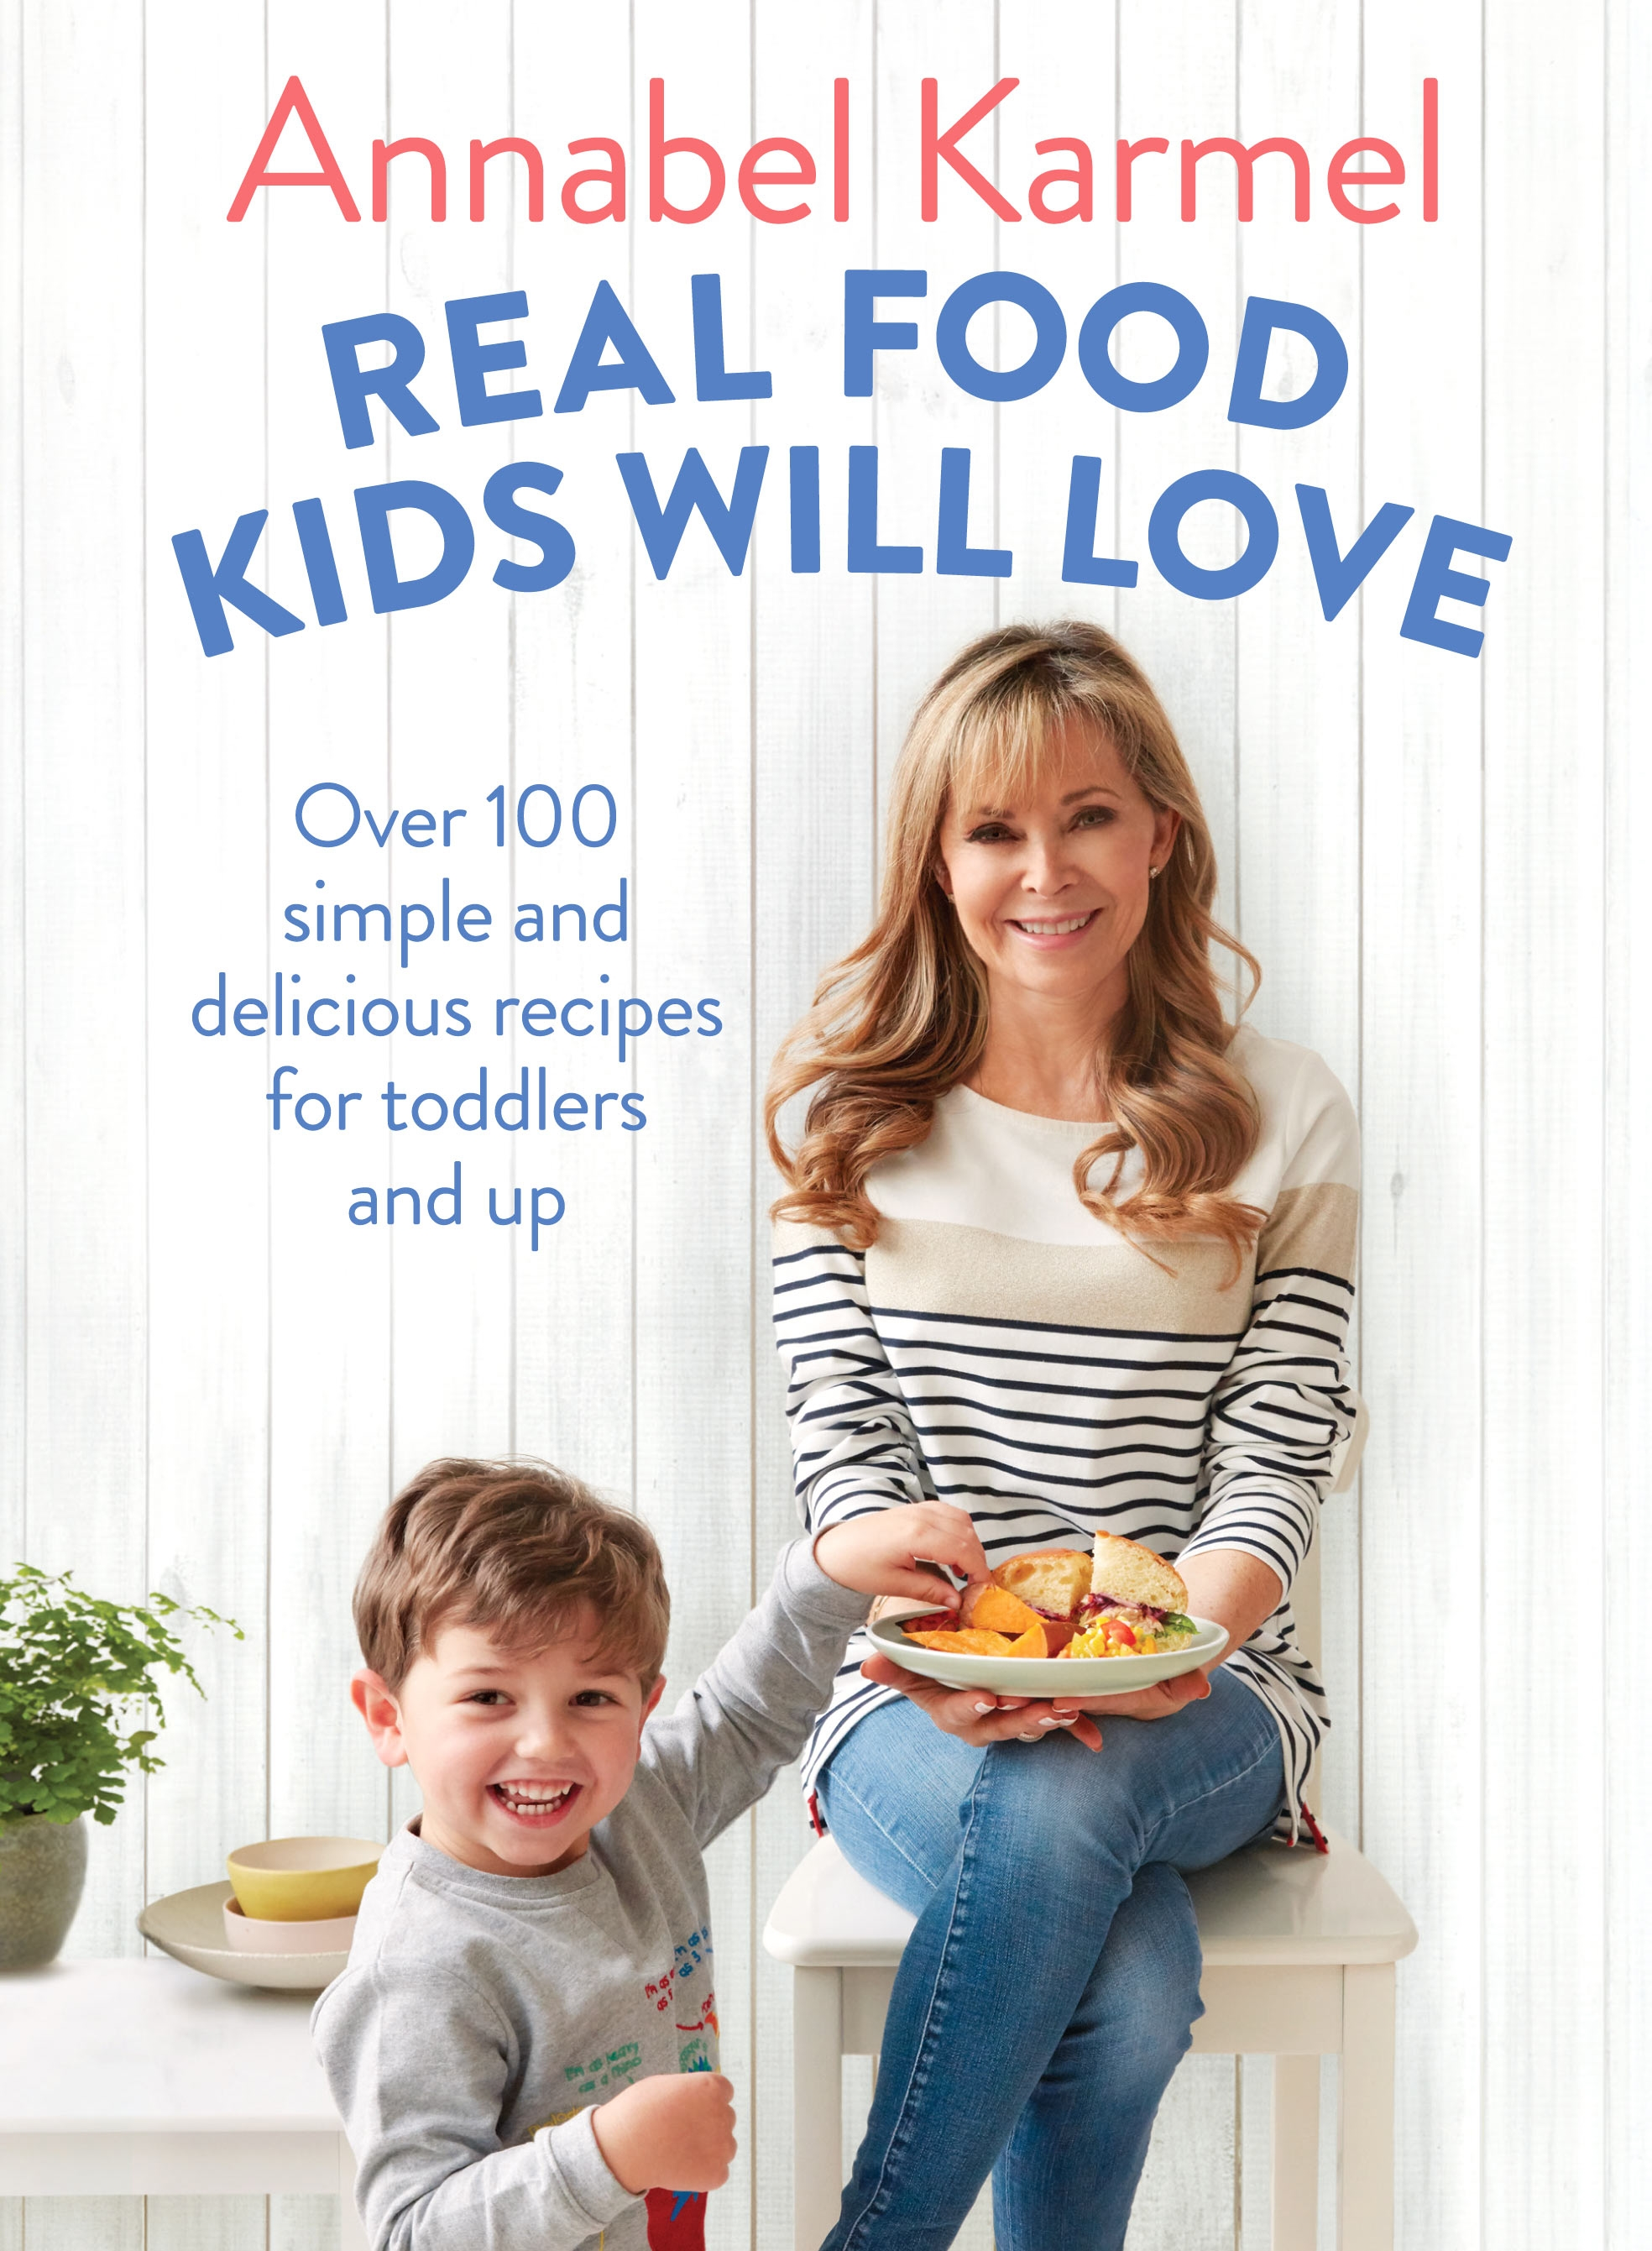 Real Food Kids Will Love100 simple and delicious recipes for toddlers a... by Annabel Karmel, ISBN: 9781509888429